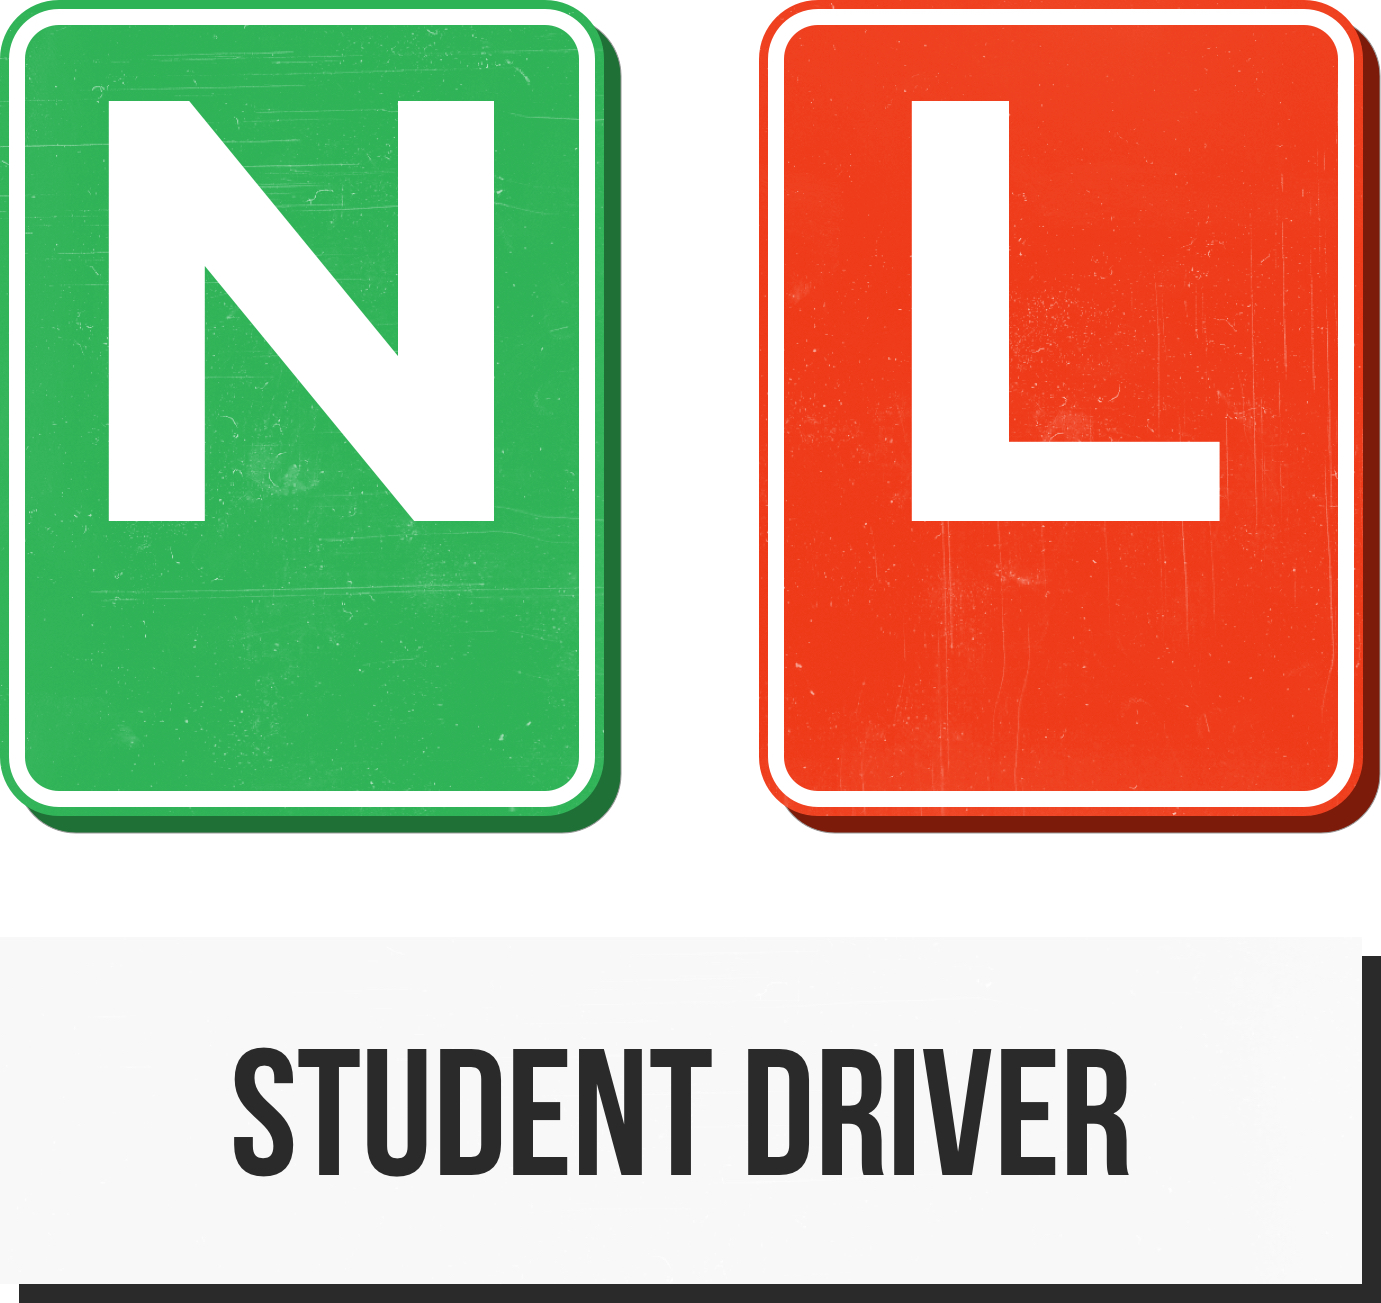 N, L and student driver illustrations